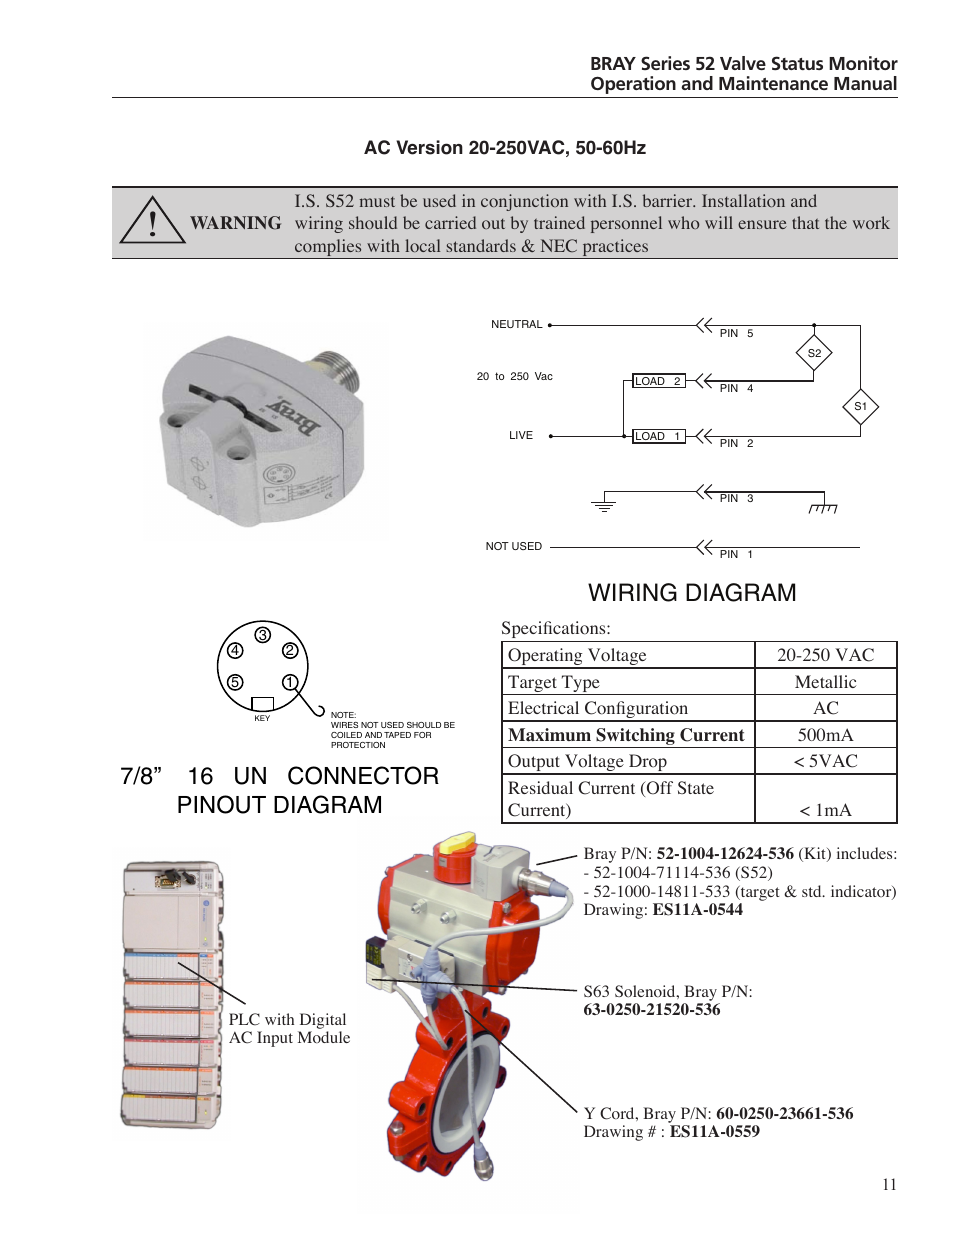 Wiring Diagram  7  8 U2019 U2019 16 Un Connector Pinout Diagram